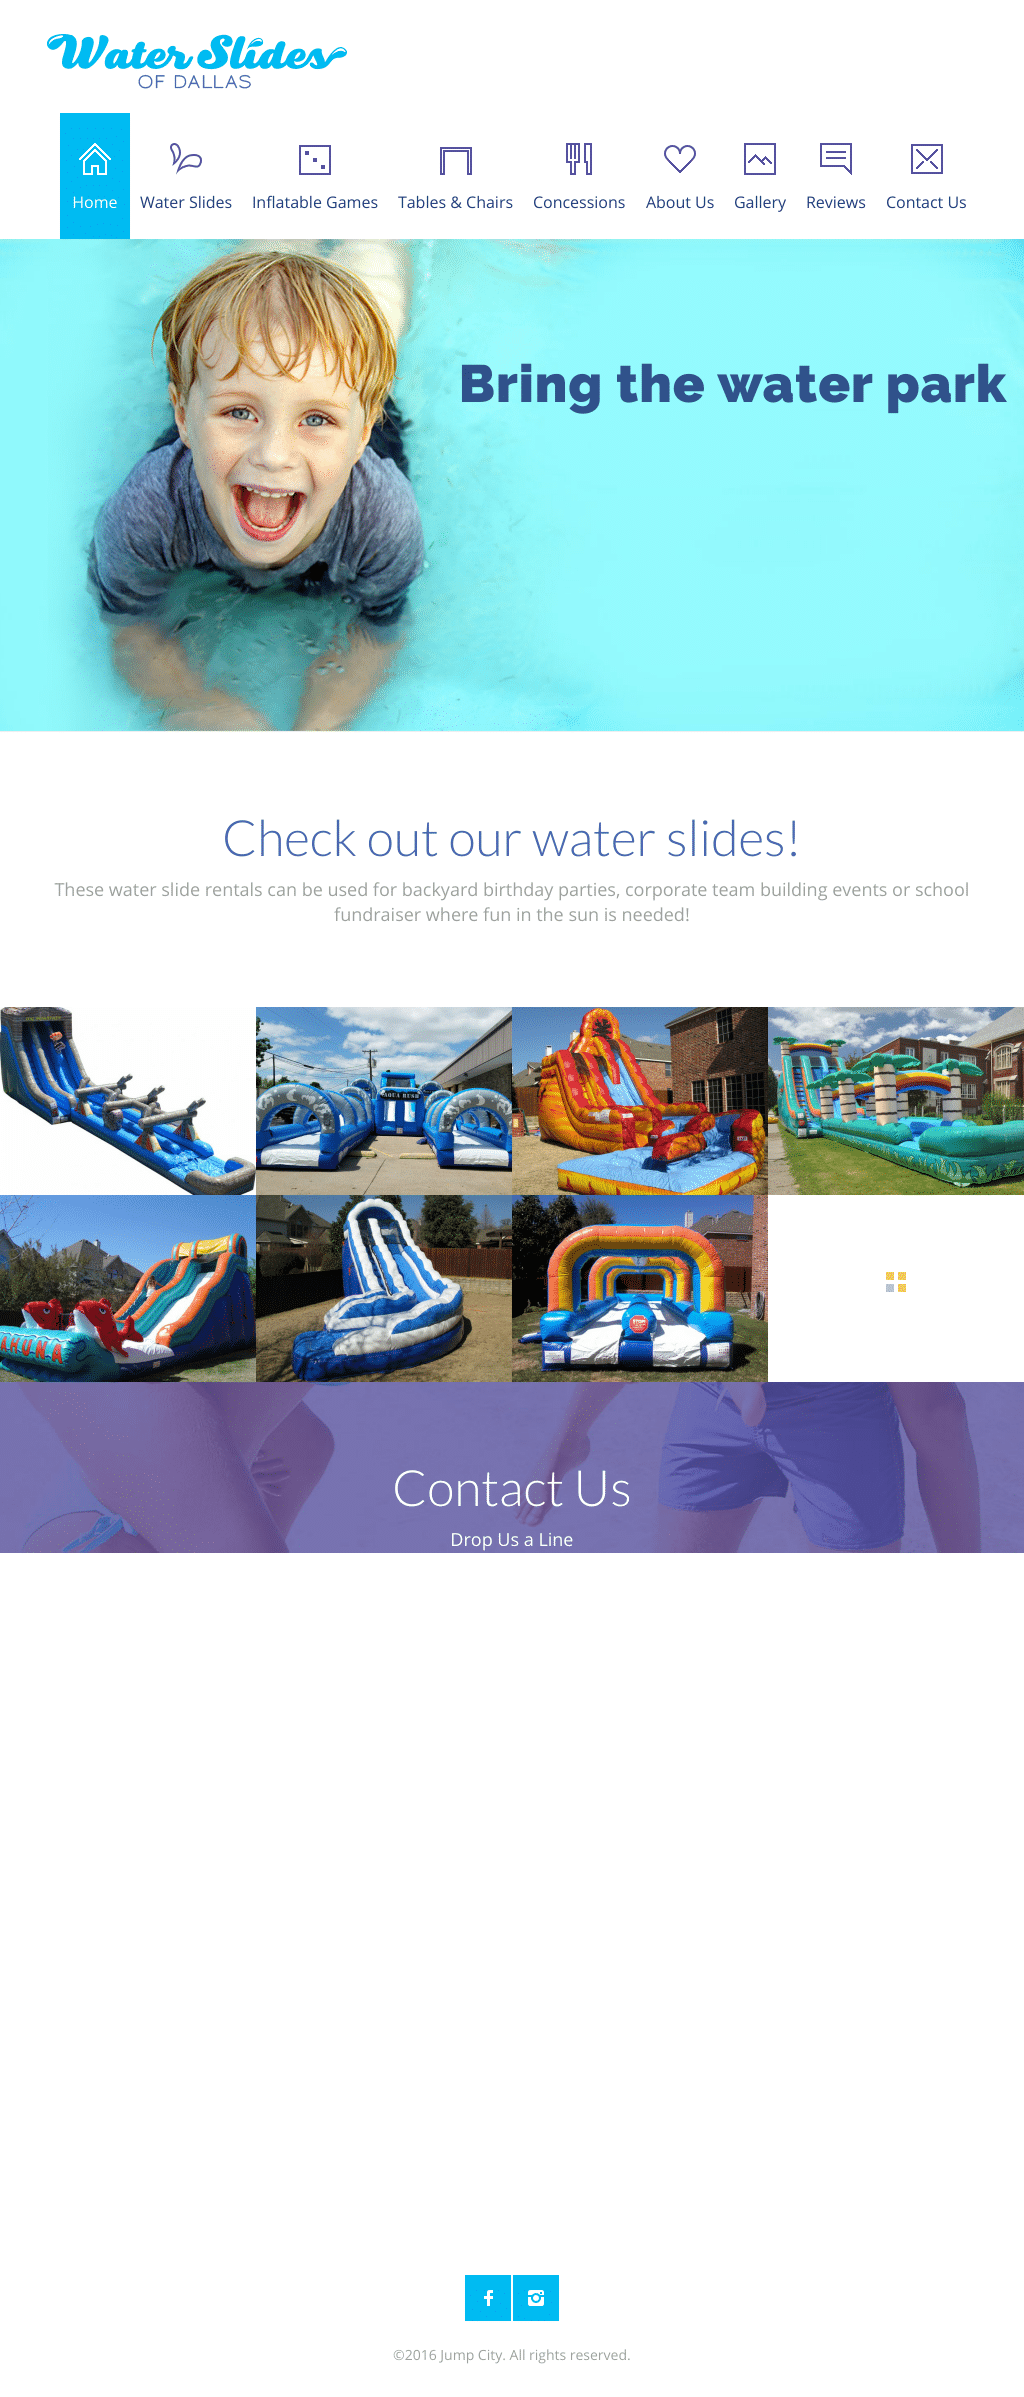 waterslidesdallas-screenshot-full